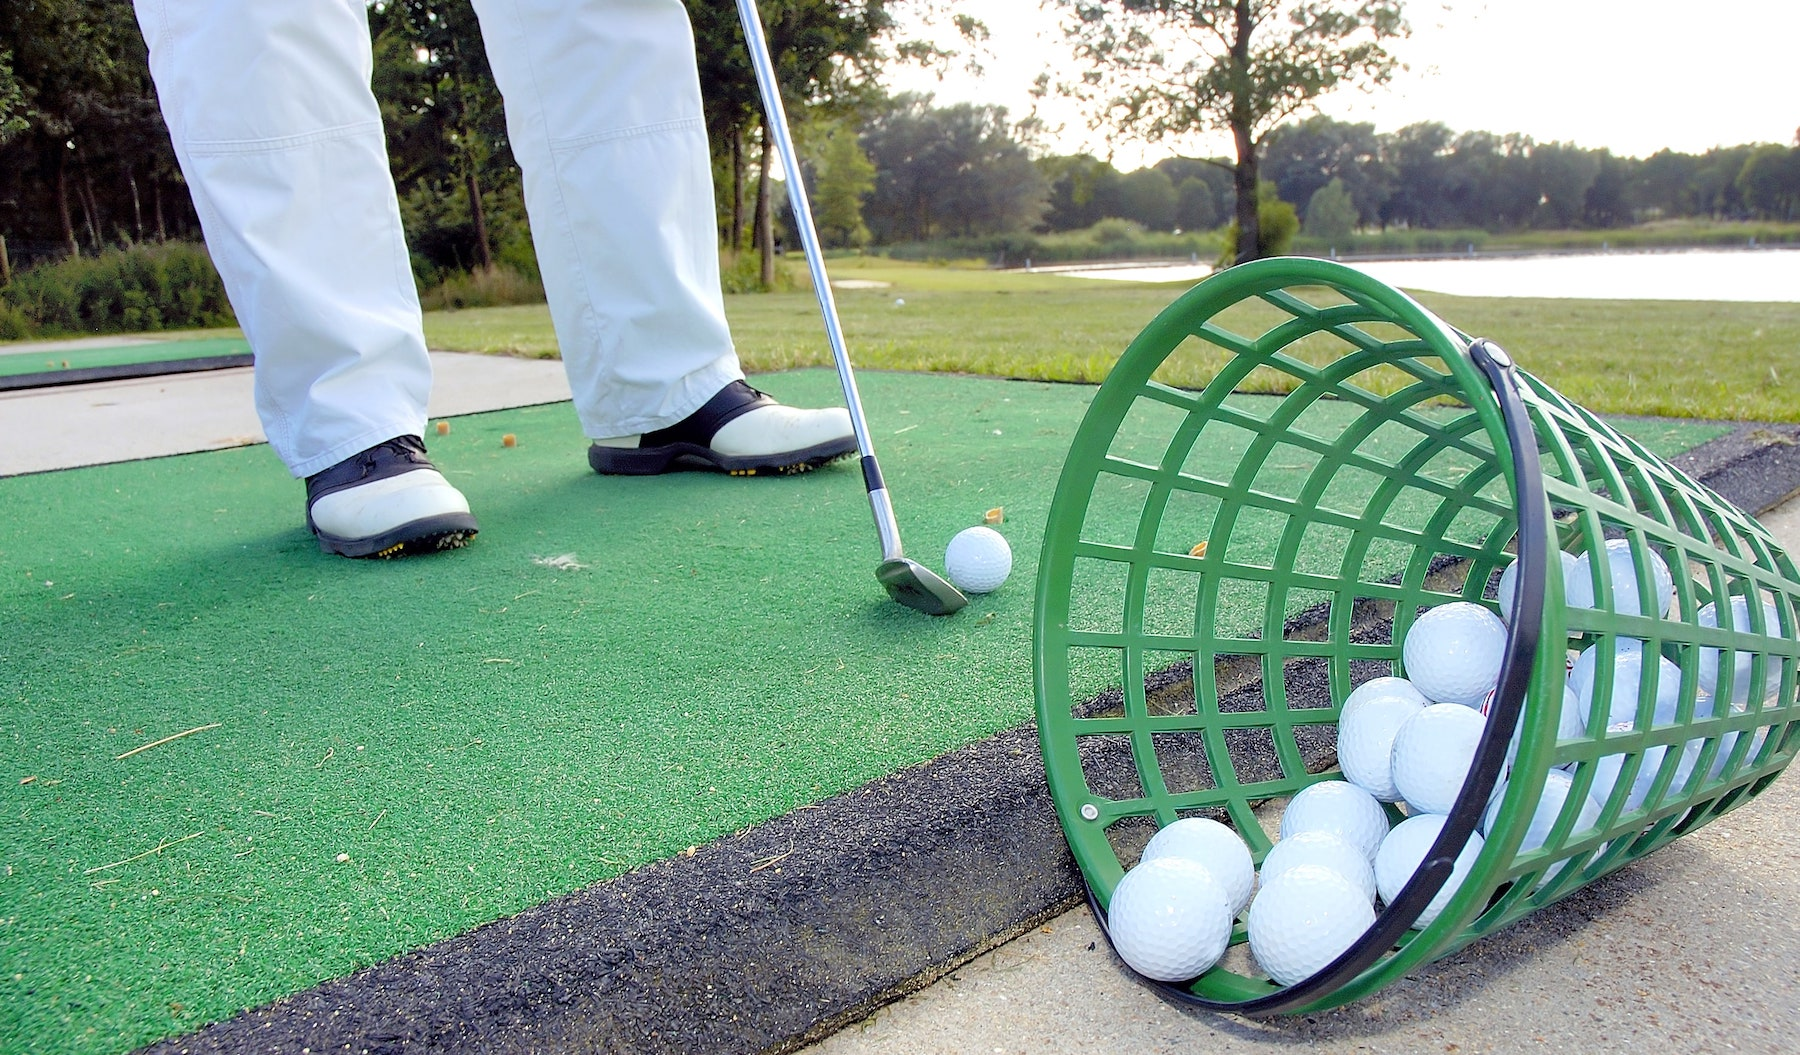 Practice Makes Perfect: A Quick Guide to Driving Range Practice